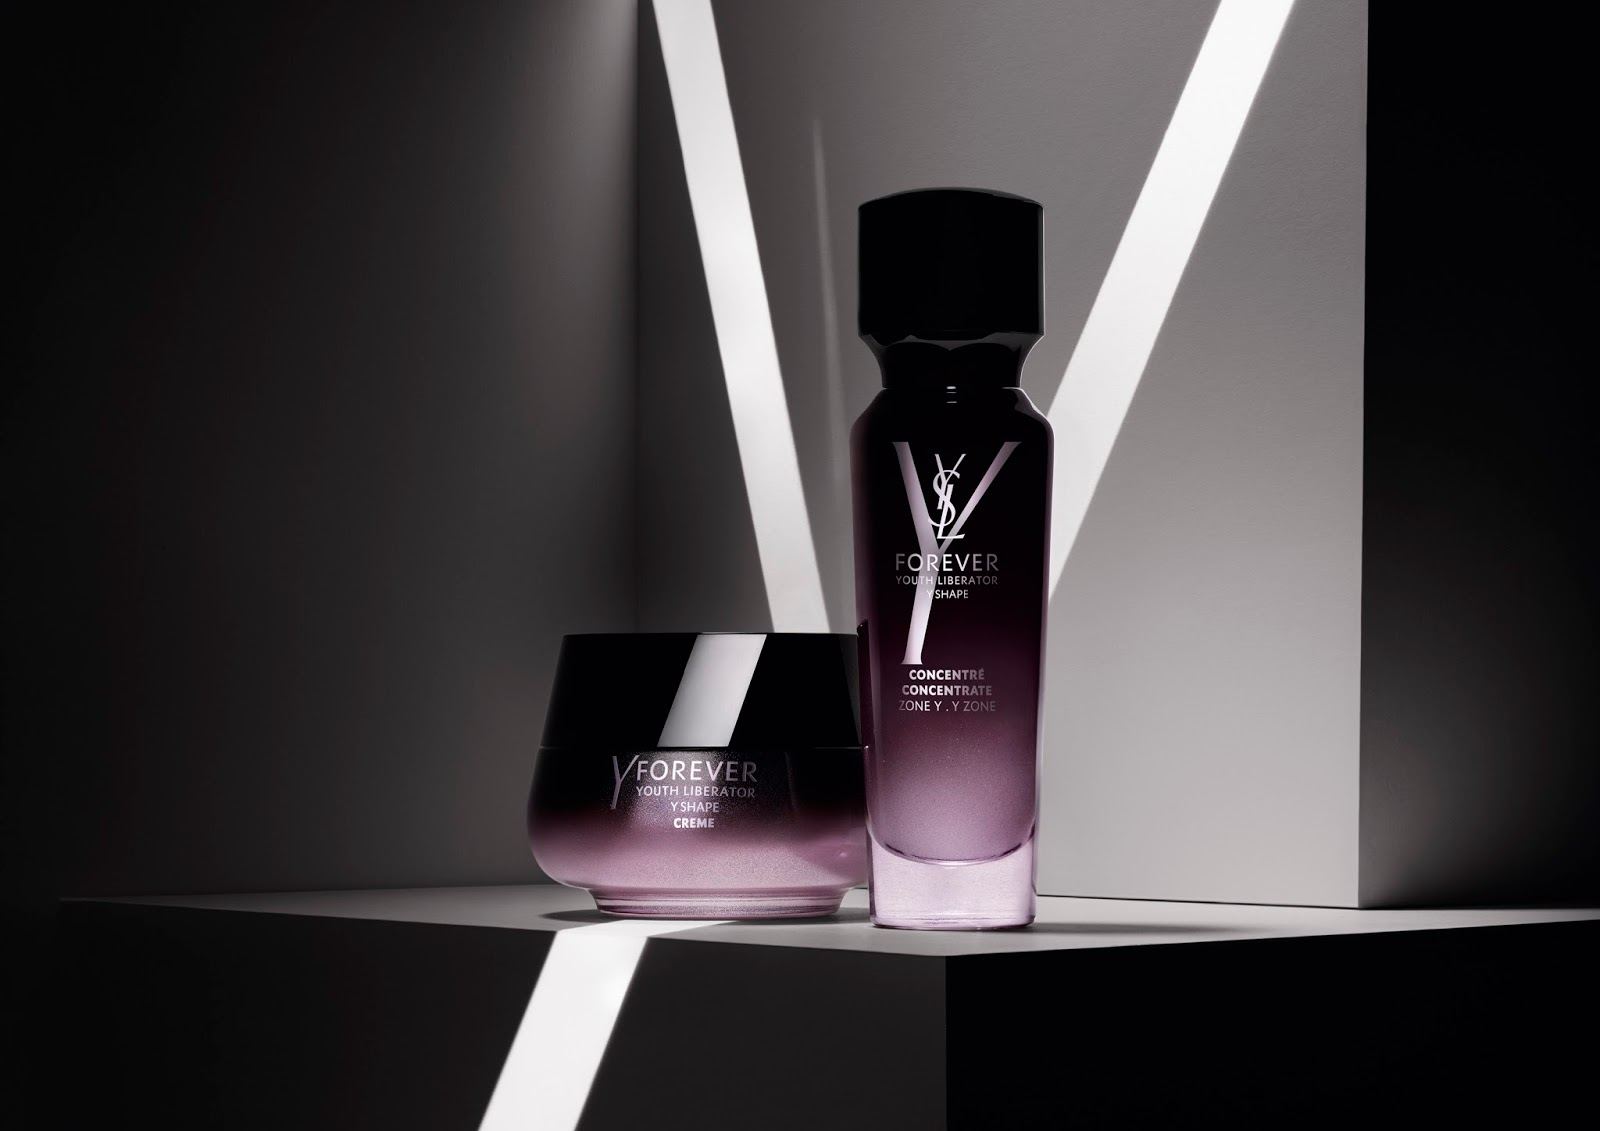 ysl forever youth liberator creme